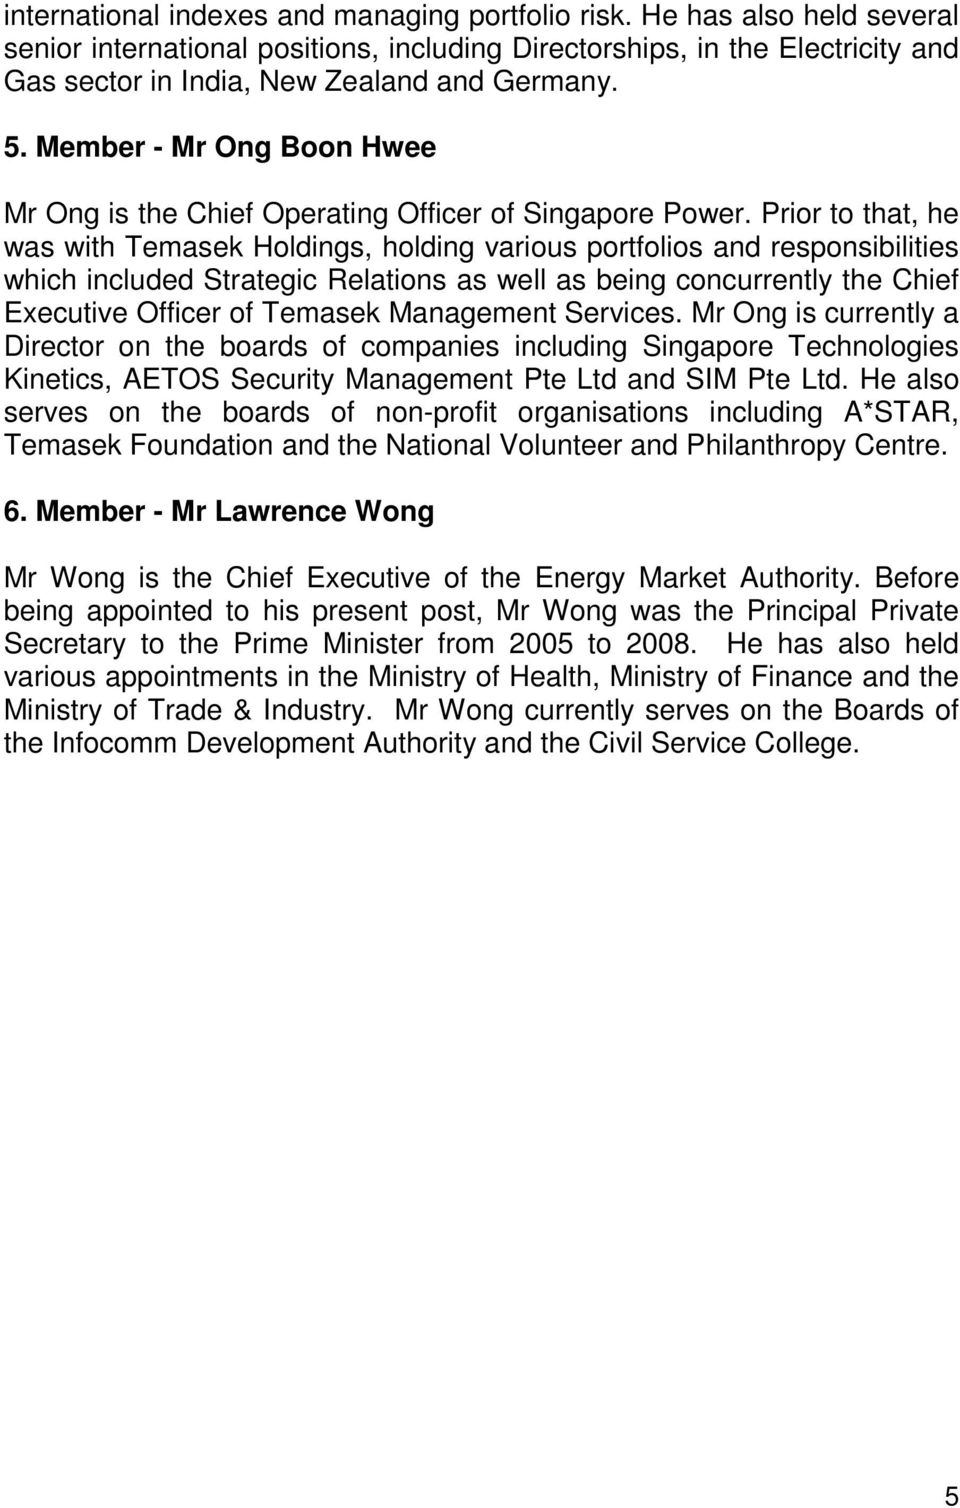 Member - Mr Ong Boon Hwee Mr Ong is the Chief Operating Officer of Singapore Power.